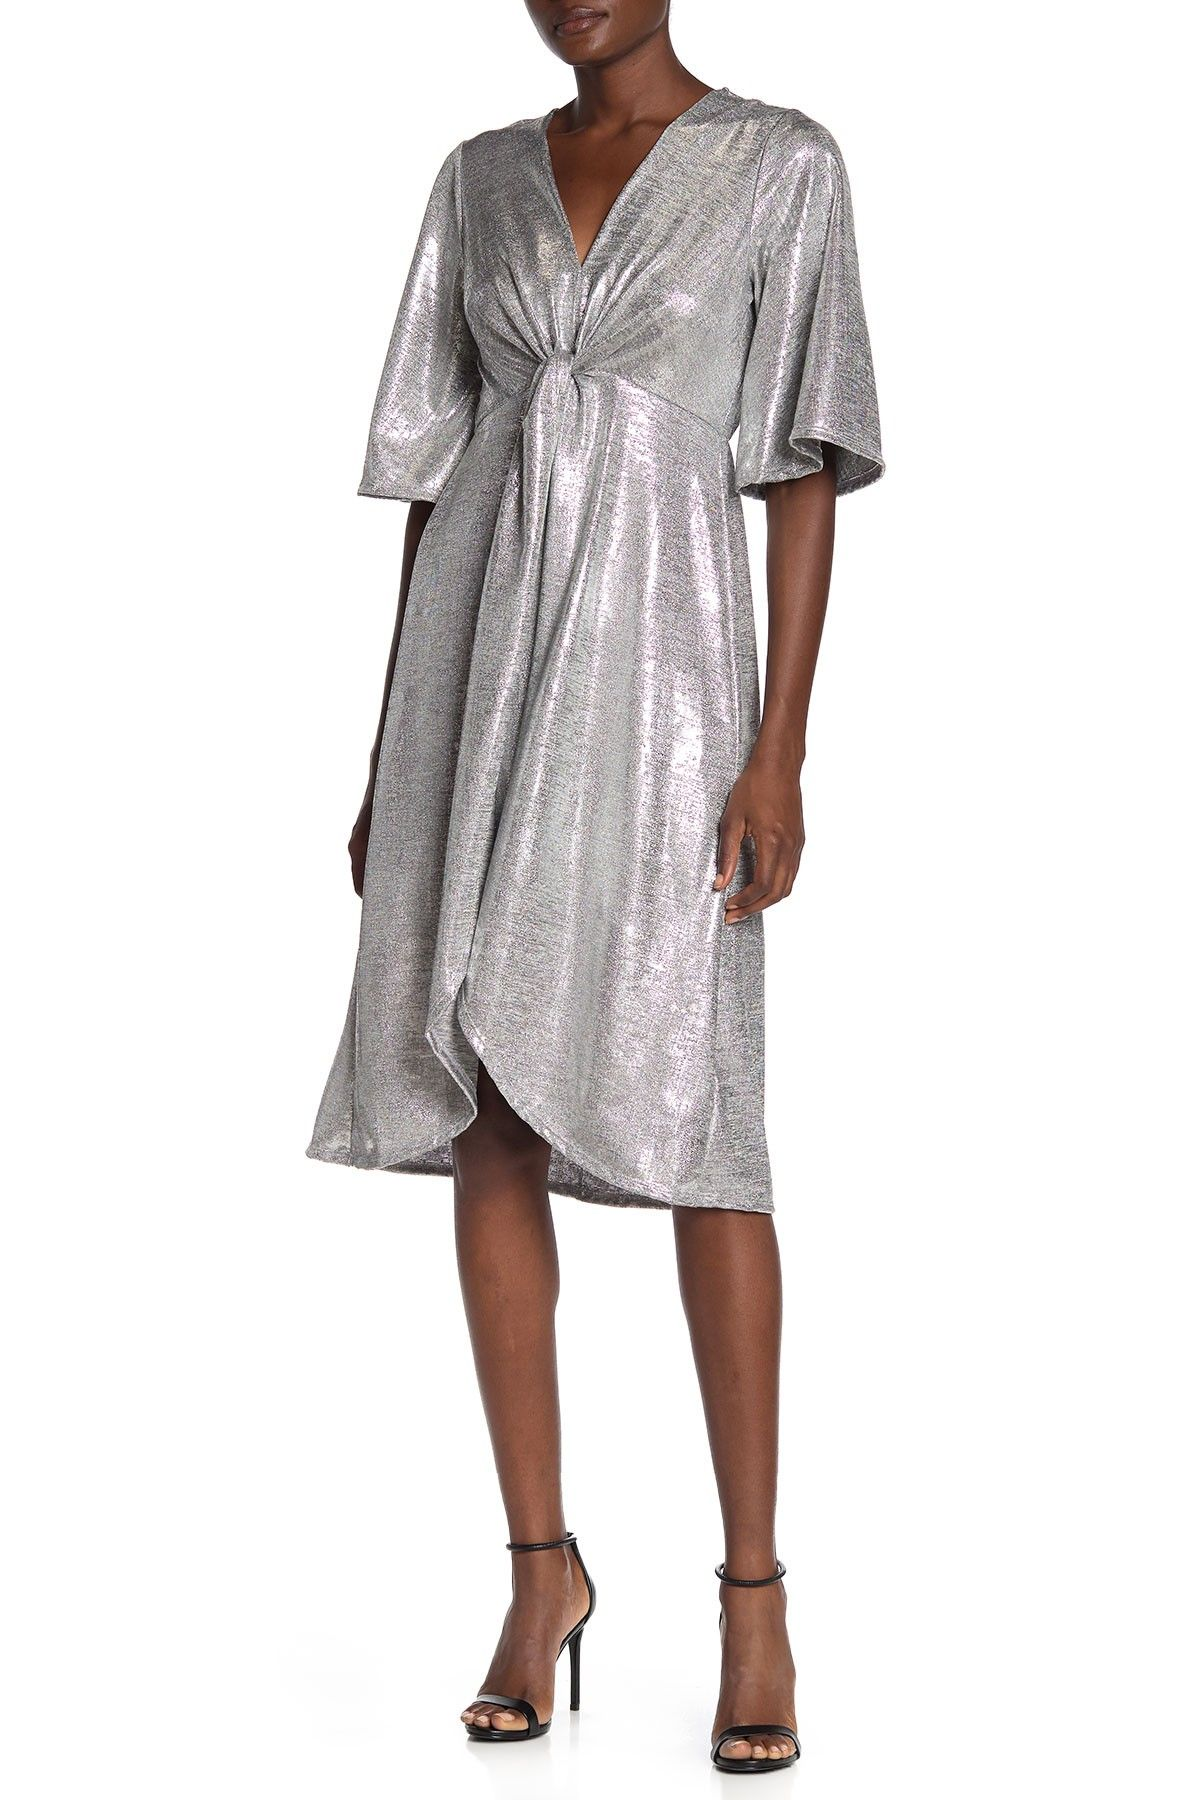 SUPERFOXX | Wrap Front Metallic Jersey Dress | Nordstrom Rack #nordstromrack